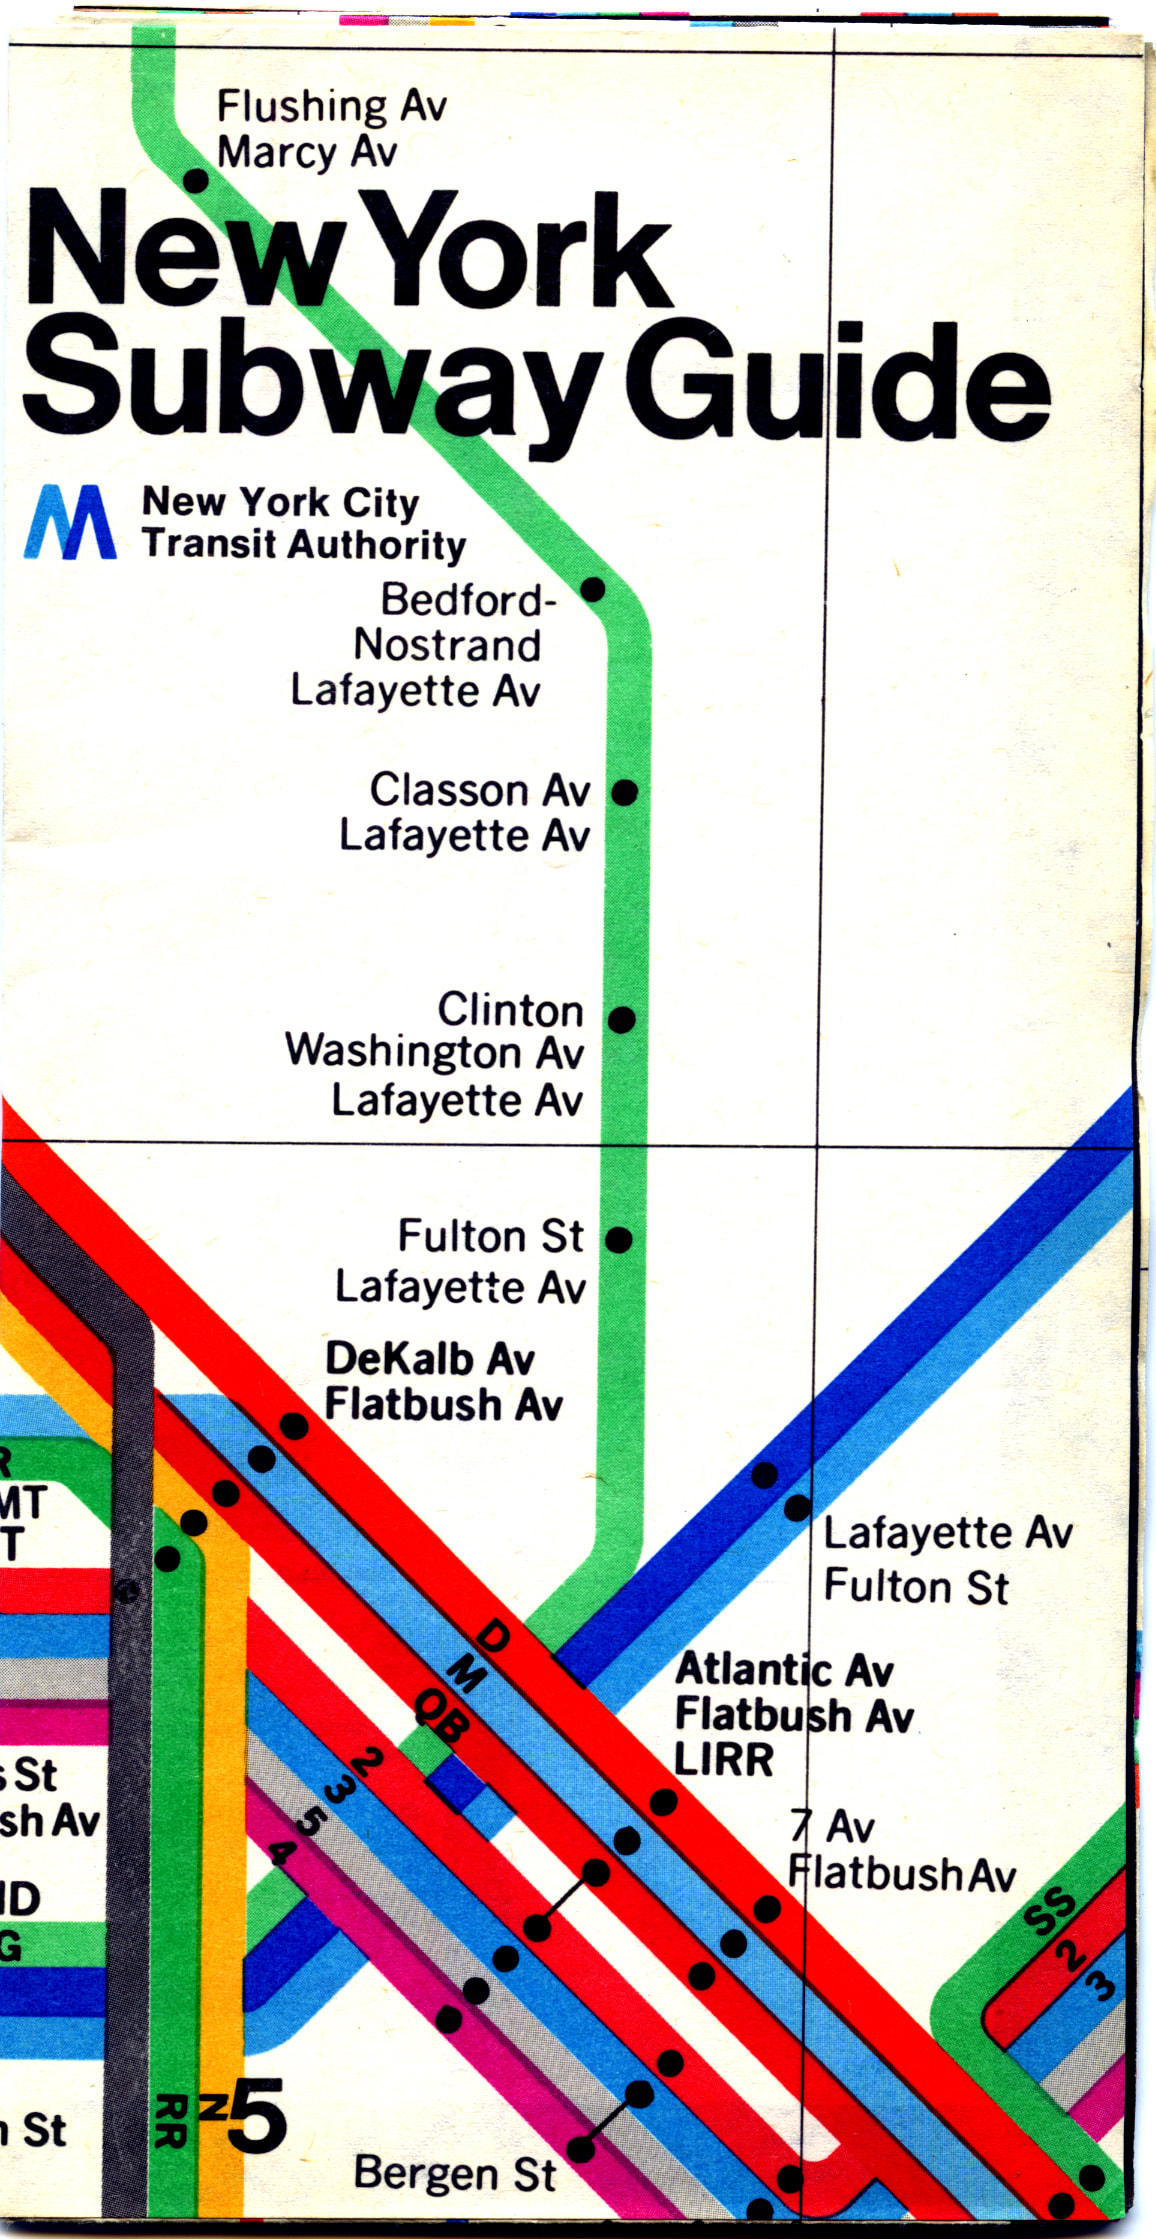 Massimo Vignelli Subway Map 1978.1974 4169 Goodstuffnowllc